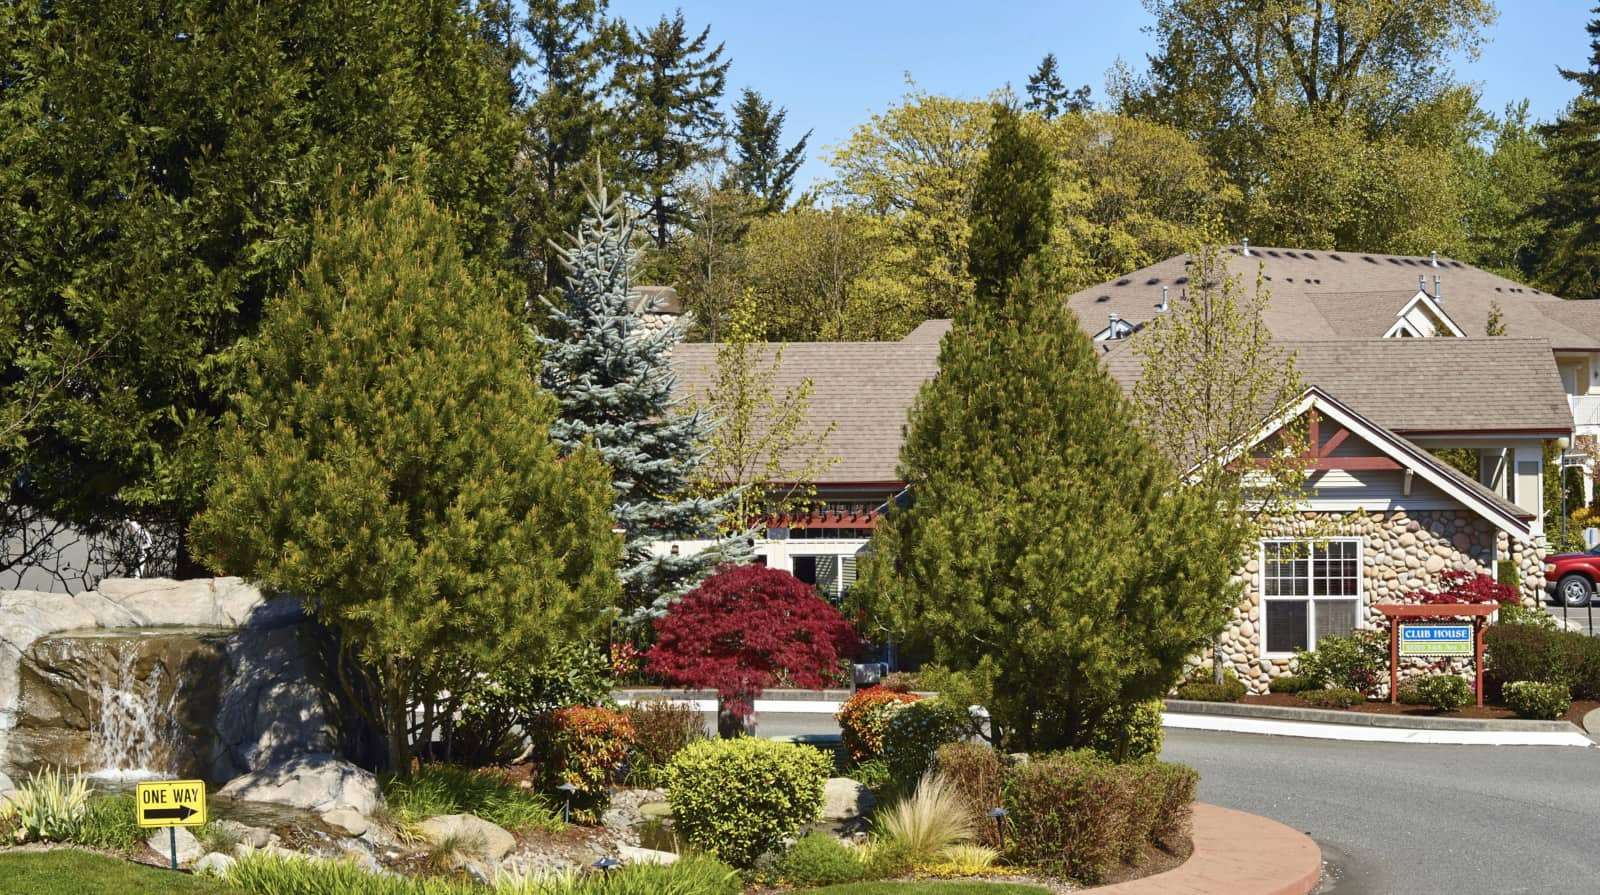 View of the the club house from across the street with pine trees in the foreground.